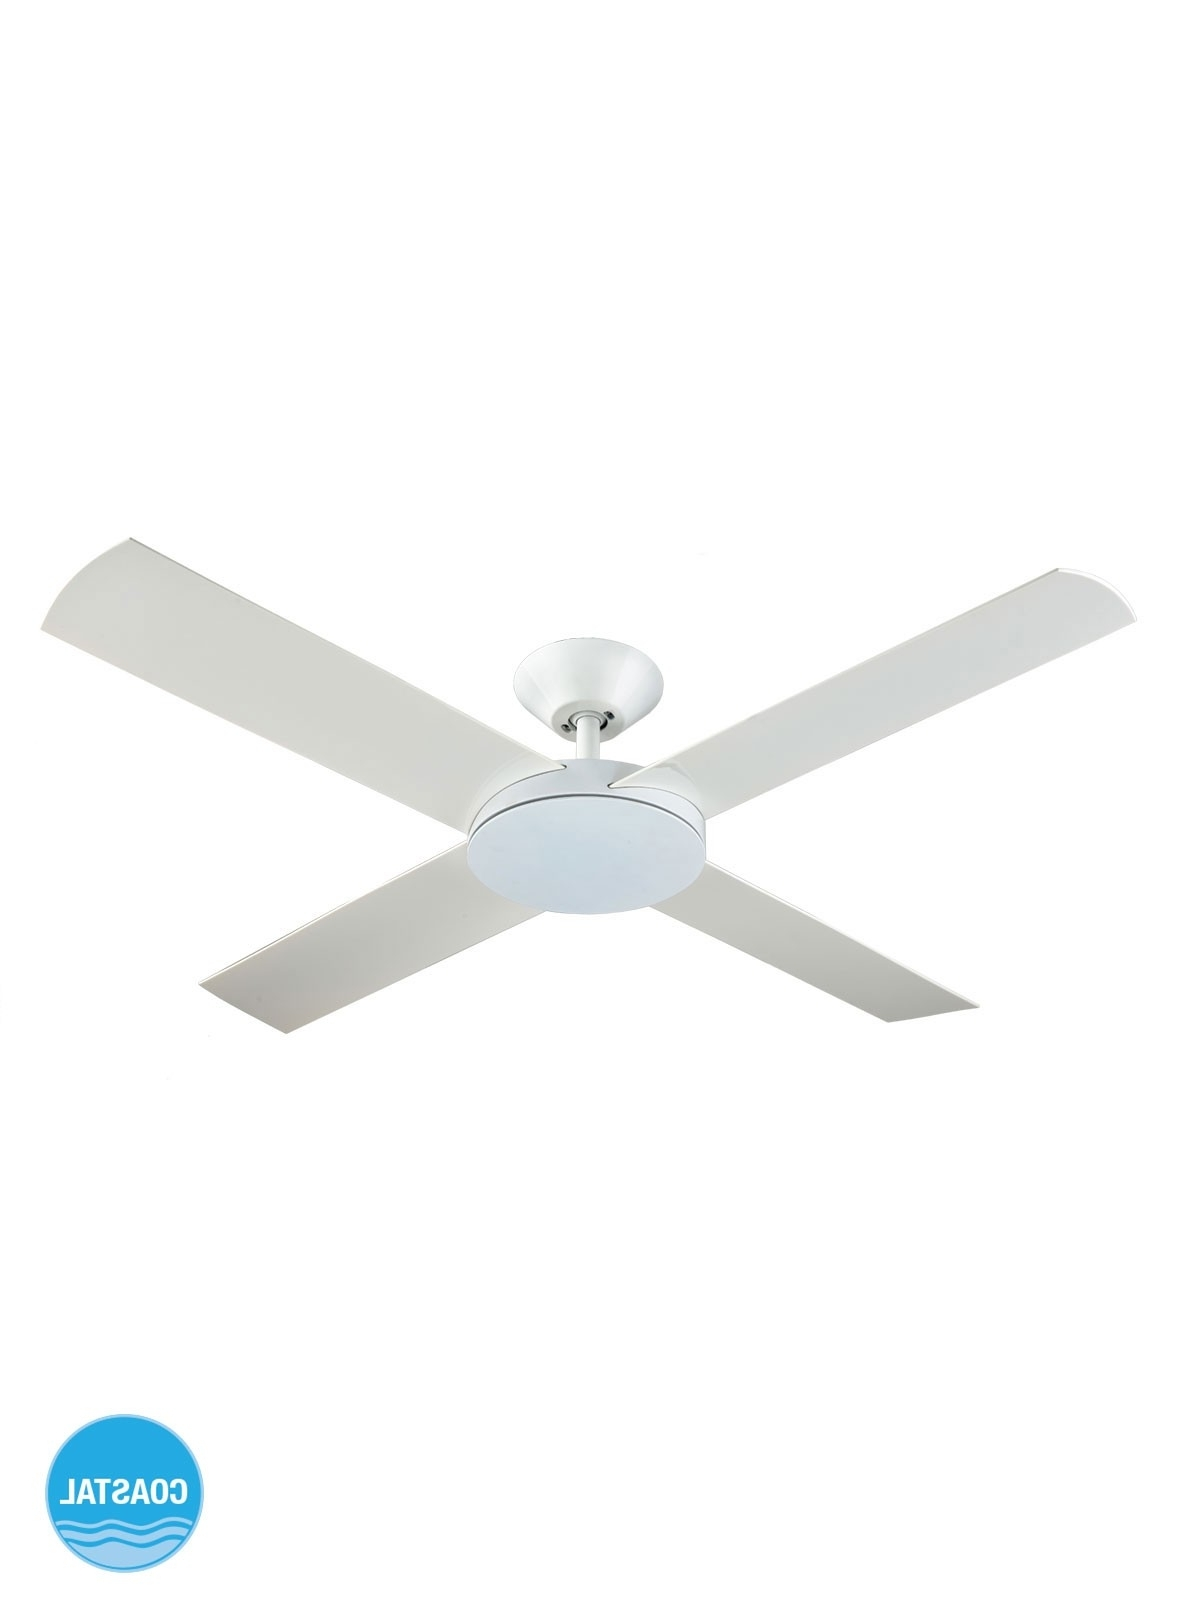 Aero 132cm Fan Only In White With Regard To Well Liked Outdoor Ceiling Fan With Light Under $ (View 20 of 20)